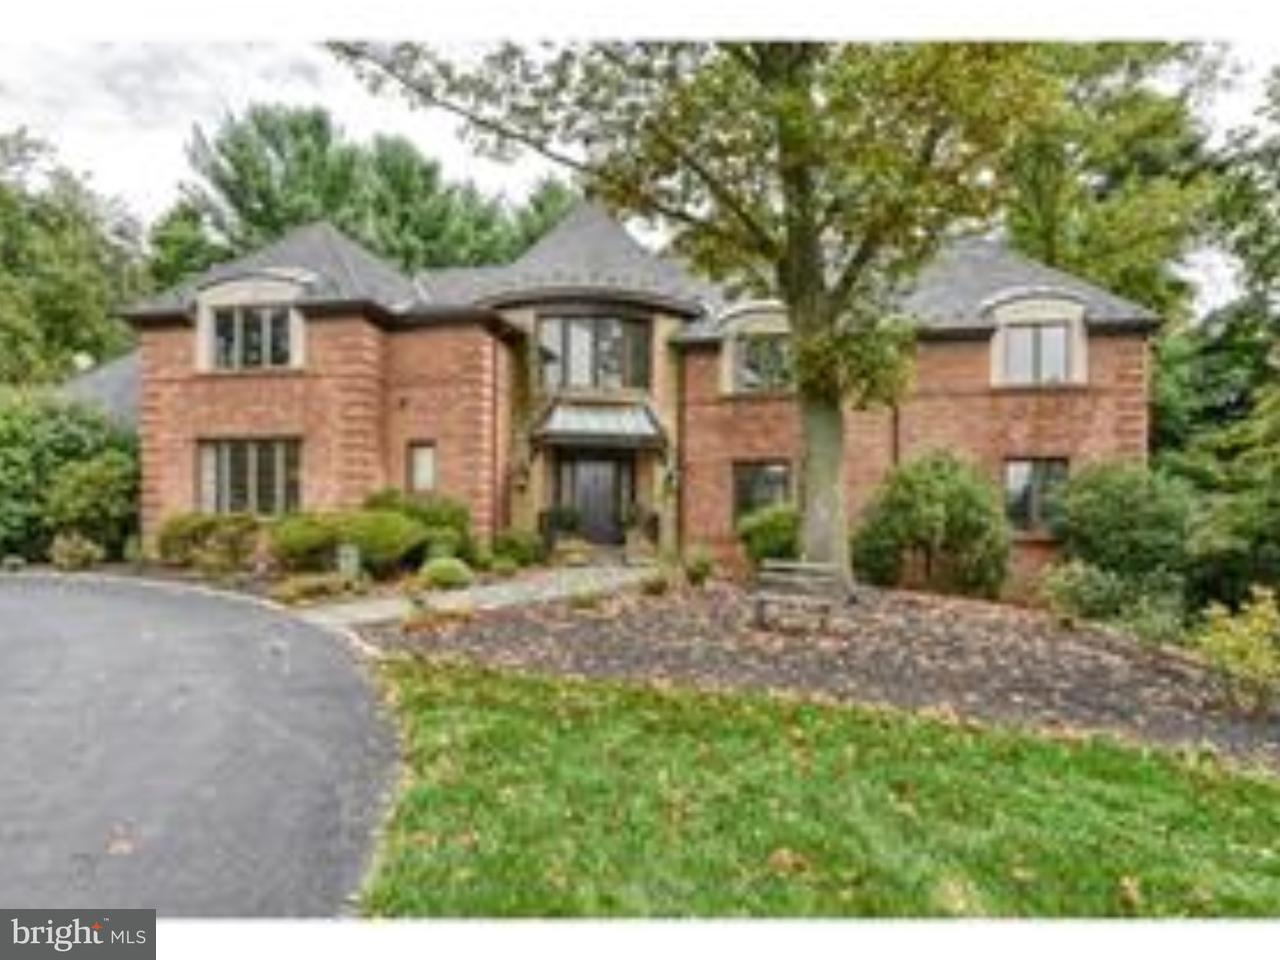 Single Family Home for Rent at 4 TOP OF STATE Lane Greenville, Delaware 19807 United States